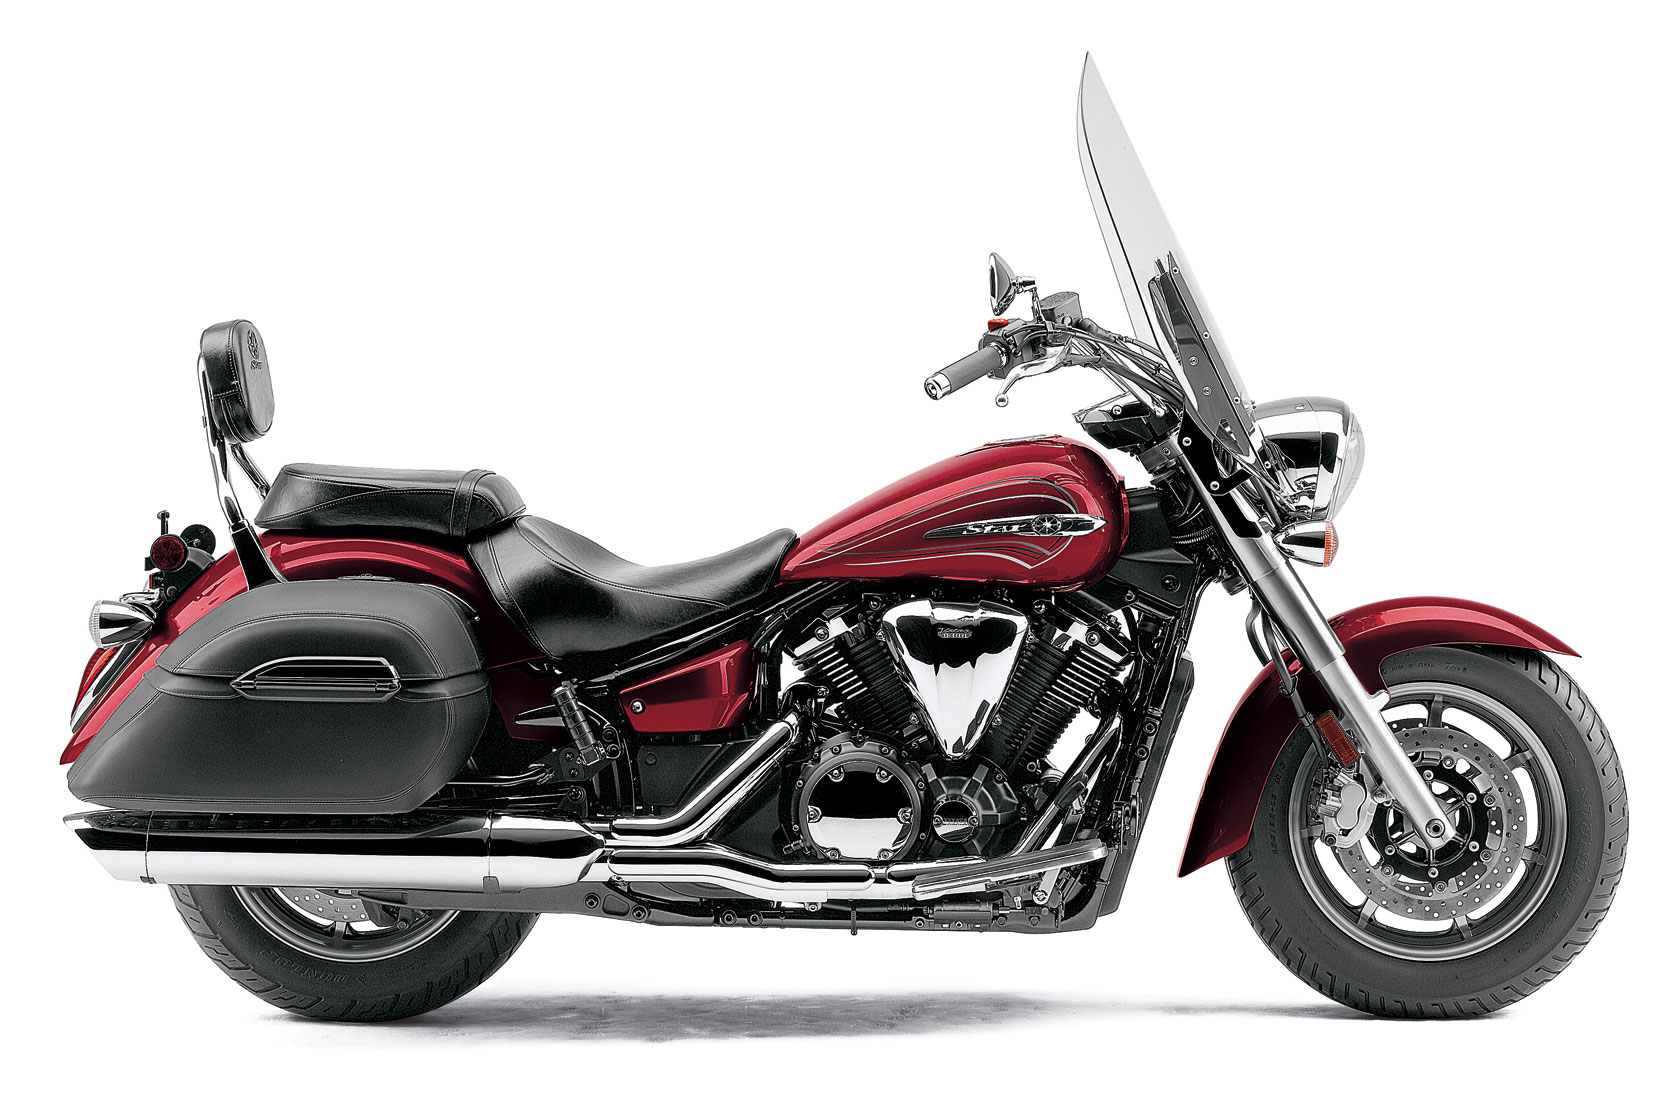 Yamaha V Star 1300 Tourer 2011 #1